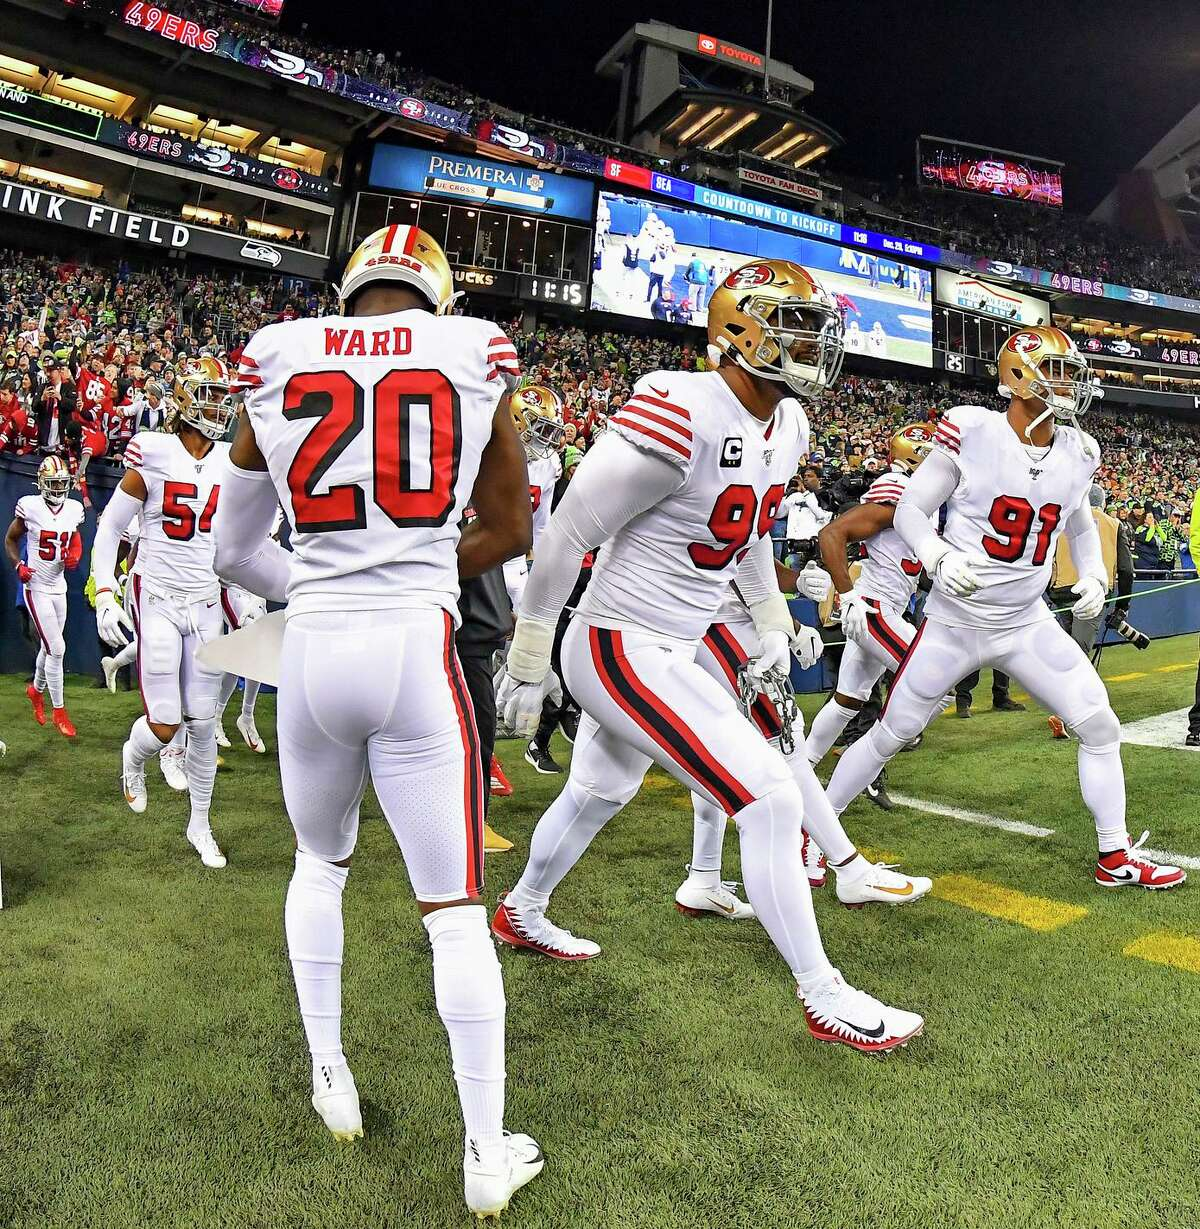 Arik Armstead #91, right, DeForest Buckner #99, center, Jimmie Ward #20, and the San Francisco 49ers run out of the tunnel during player introductions before the game against the Seattle Seahawks at CenturyLink Field on December 29, 2019 in Seattle, Washington. The San Francisco 49ers top the Seattle Seahawks 26-21. (Photo by Alika Jenner/Getty Images)